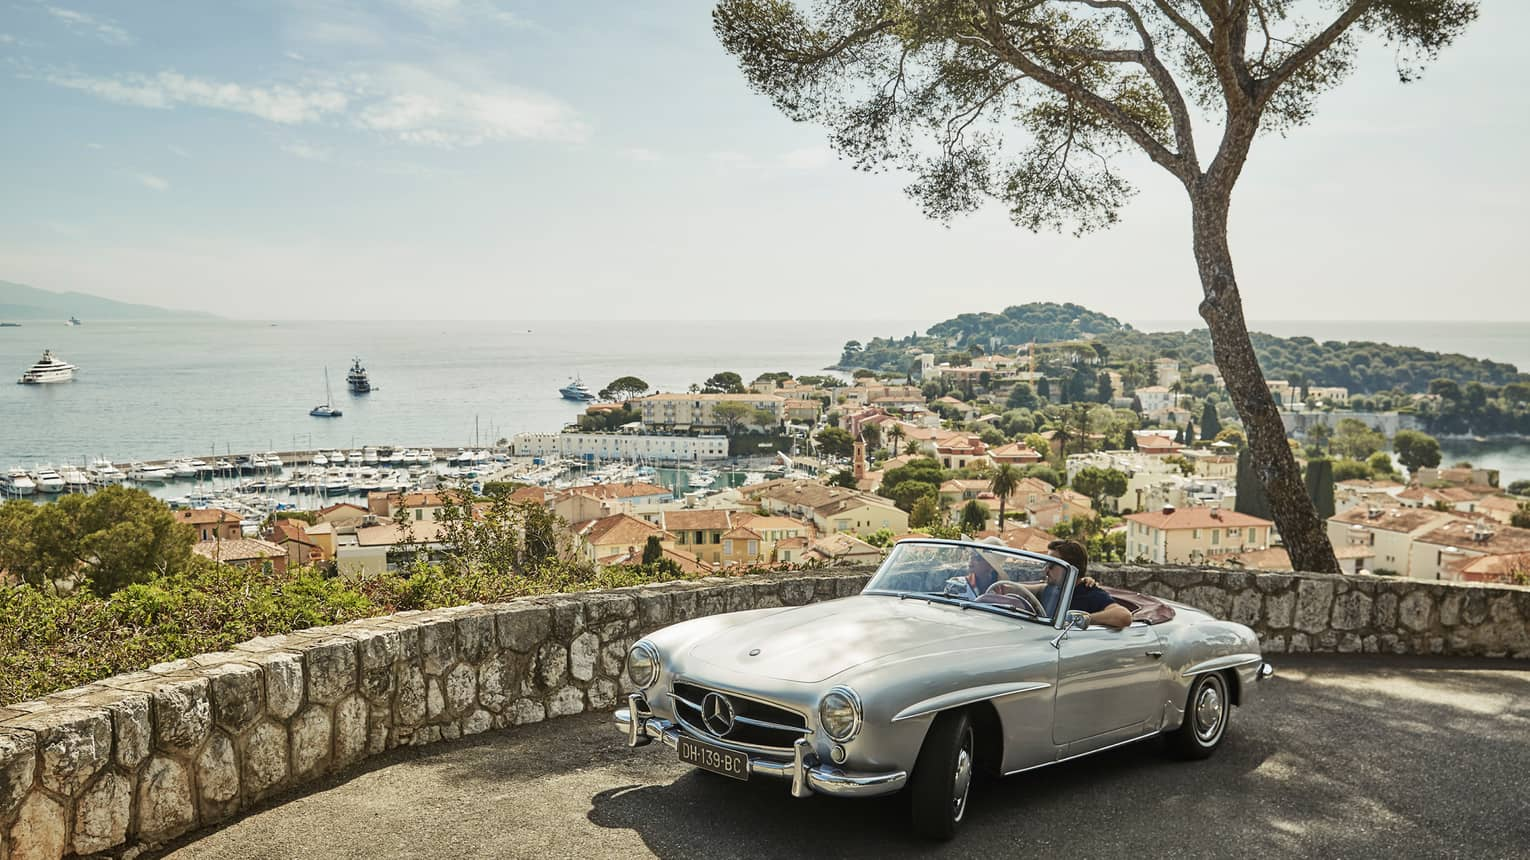 Couple in luxury vintage white car parked under tree by stone wall overlooking red roofs, water